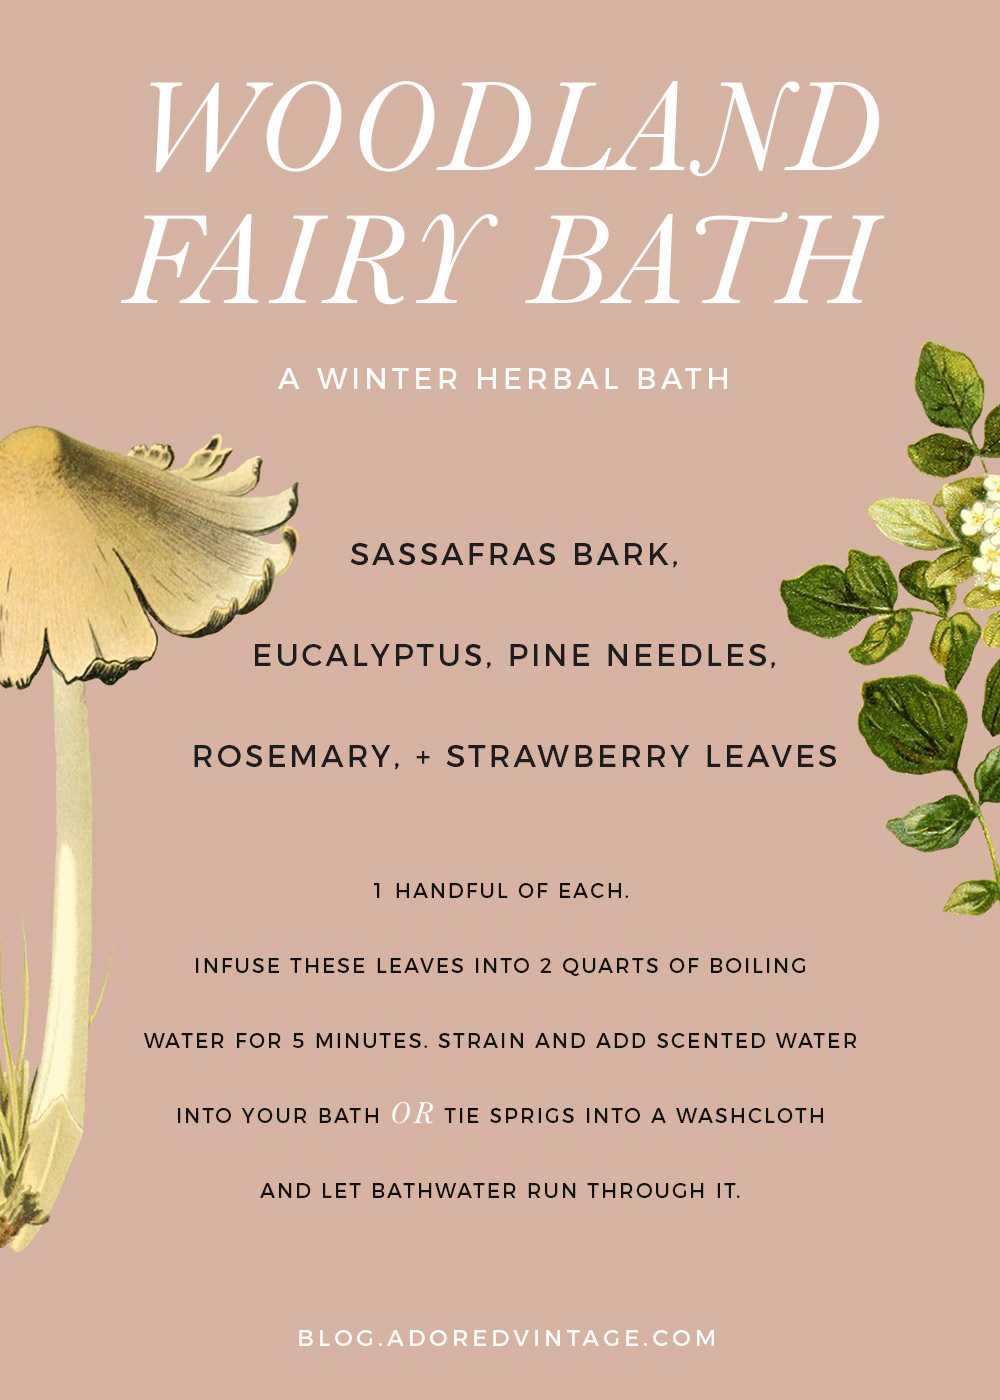 Woodland Fairy Herbal Bath for Winter